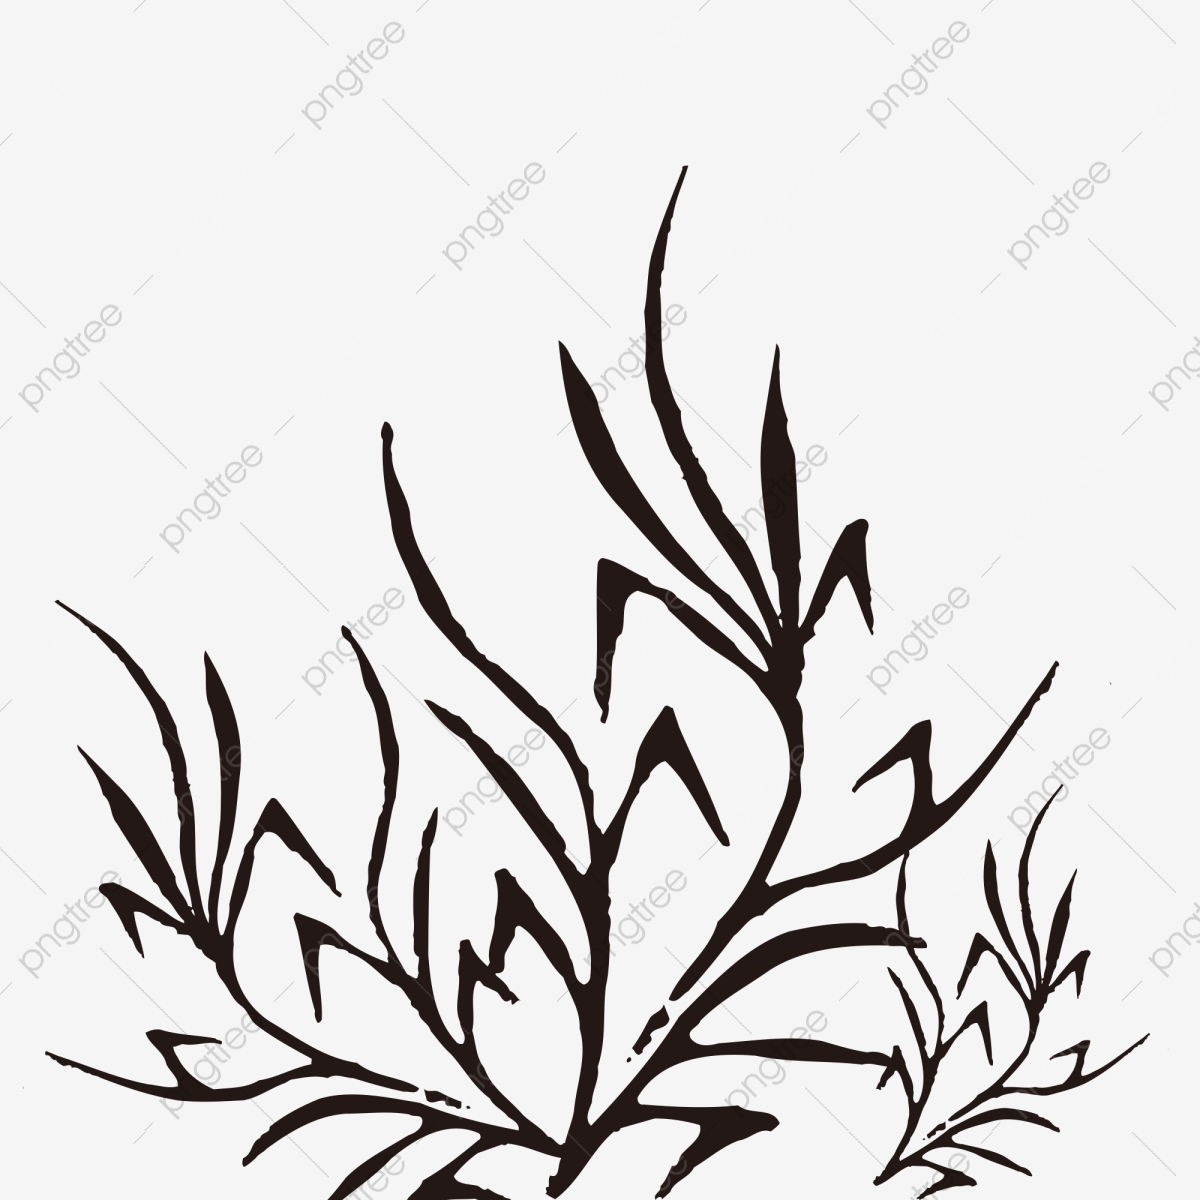 Chinese Style Black Minimalist Grass Grass Clipart Black And White Chinese Style Grass Black Png Transparent Clipart Image And Psd File For Free Download